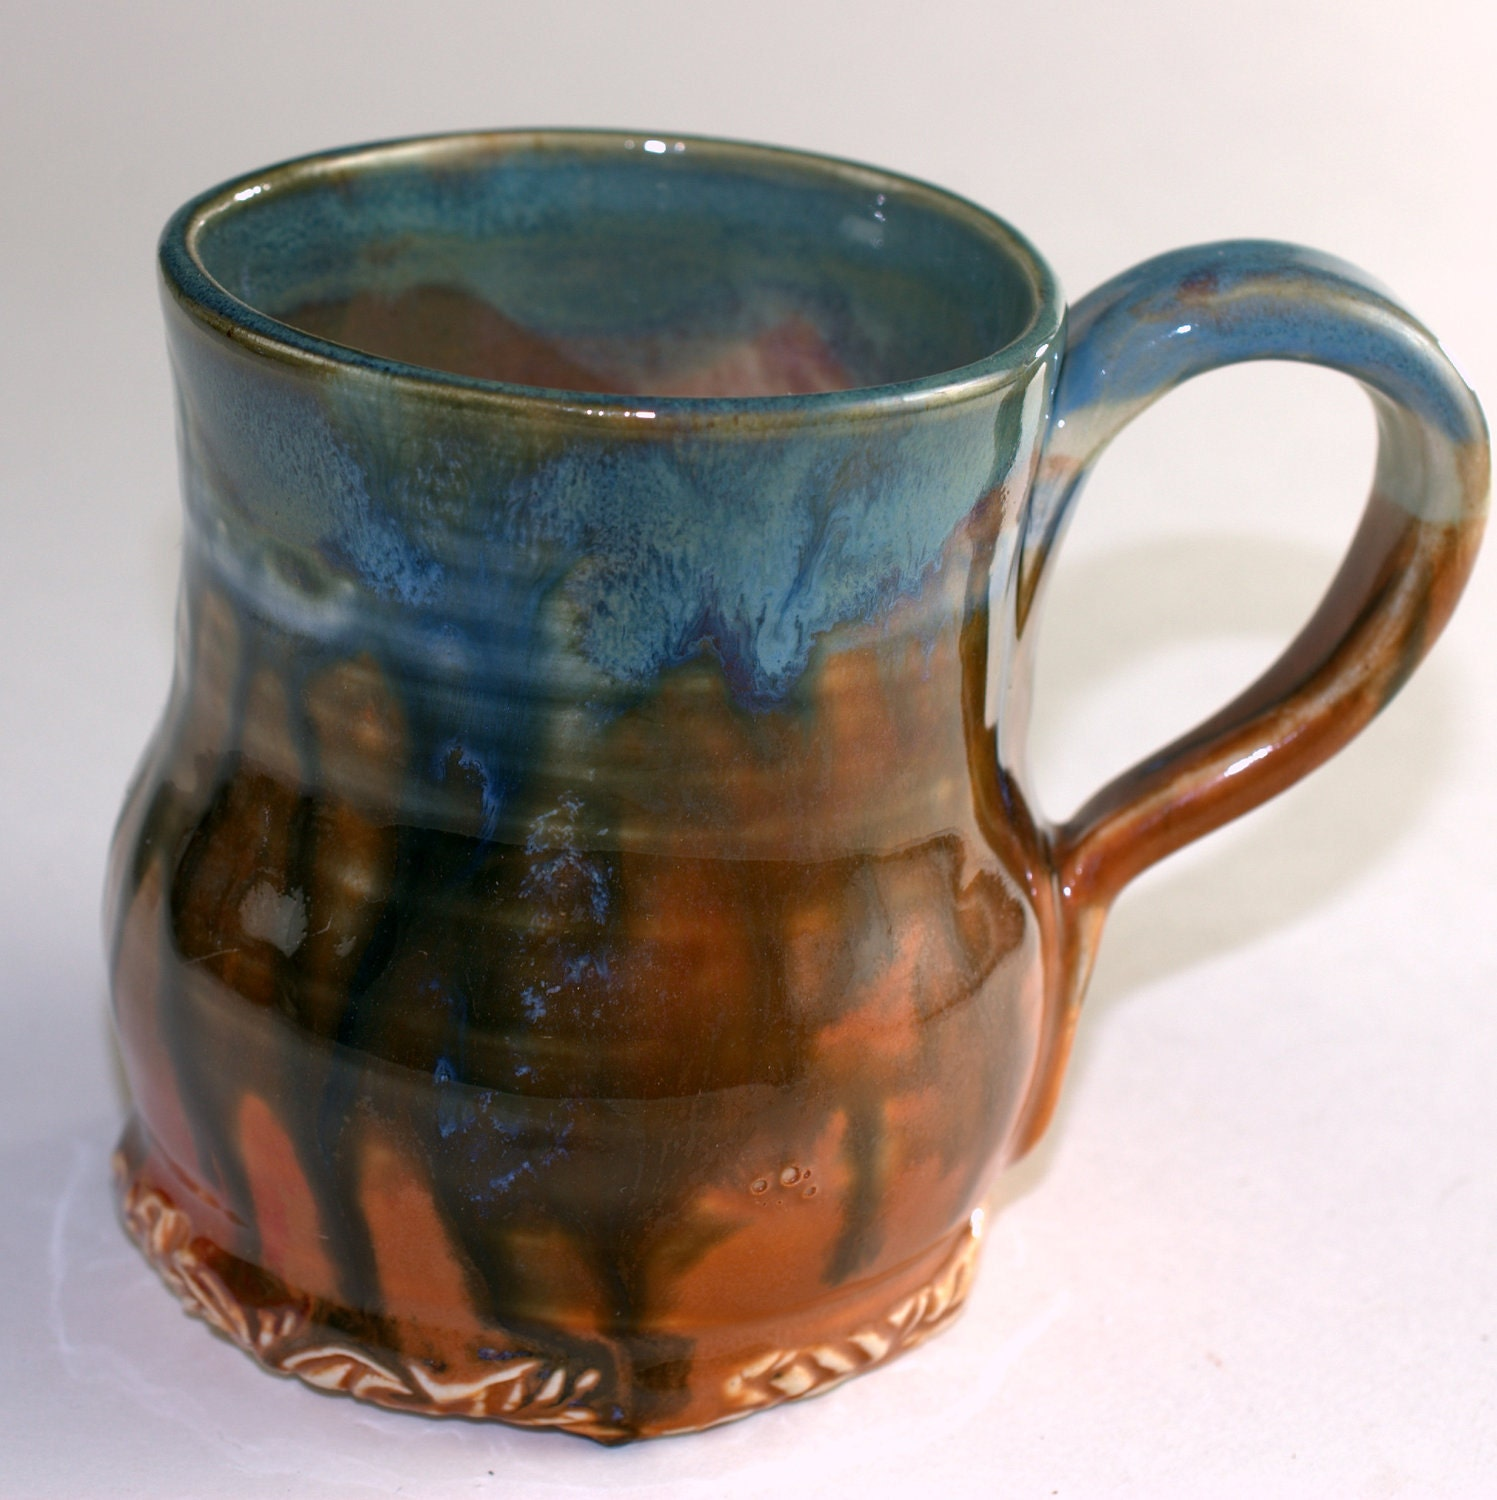 Mug Coffee 10 oz Rust and Blue Ceramic Mug, Handmade Teacup - PrimitivePots